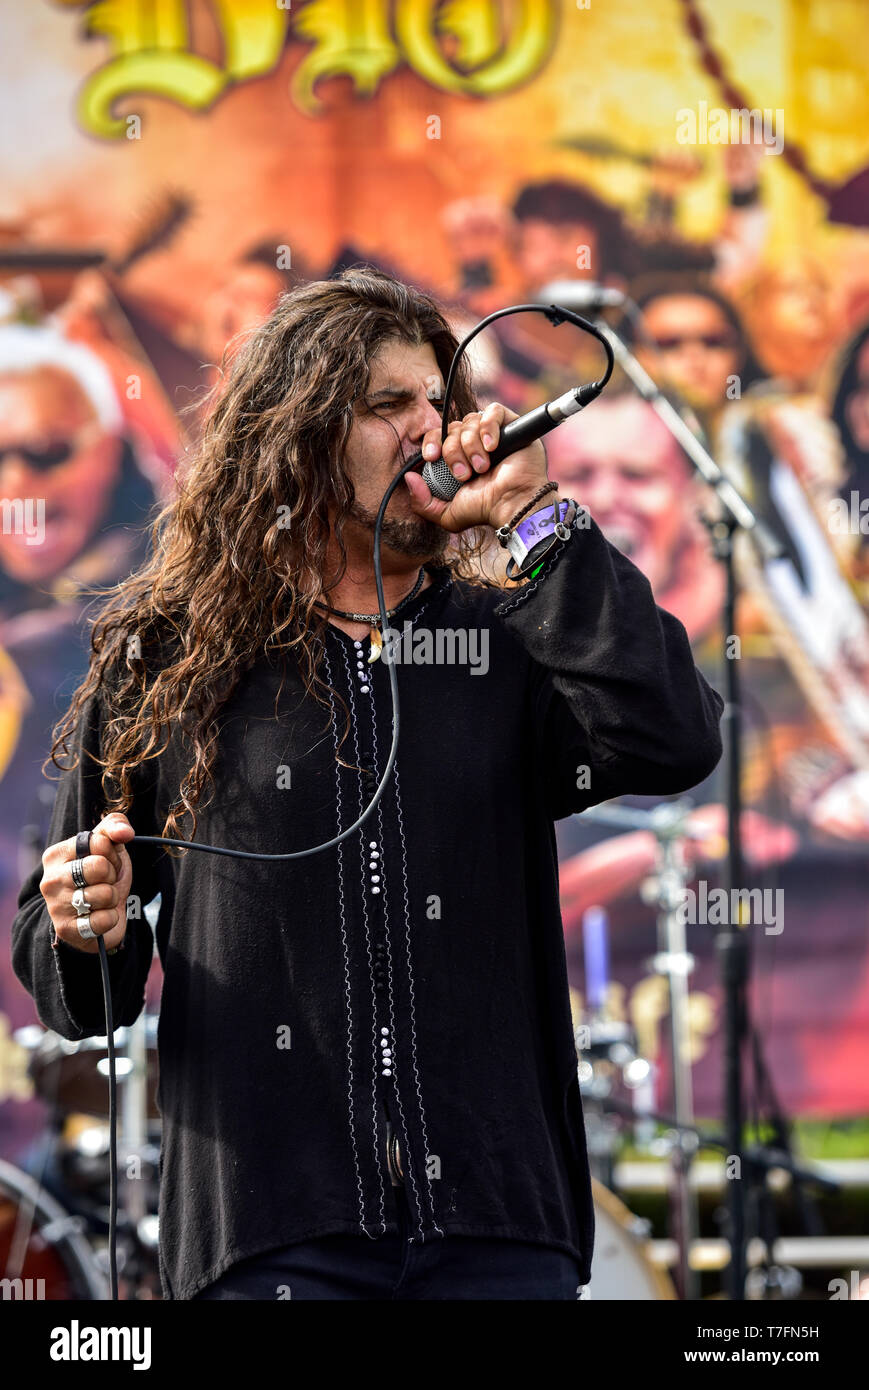 May 5, 2019, Encino, California, MICHAEL OLIVERI at the 2019 Ride for Ronnie charity concert at Los Encinos State Historic Park. Stock Photo